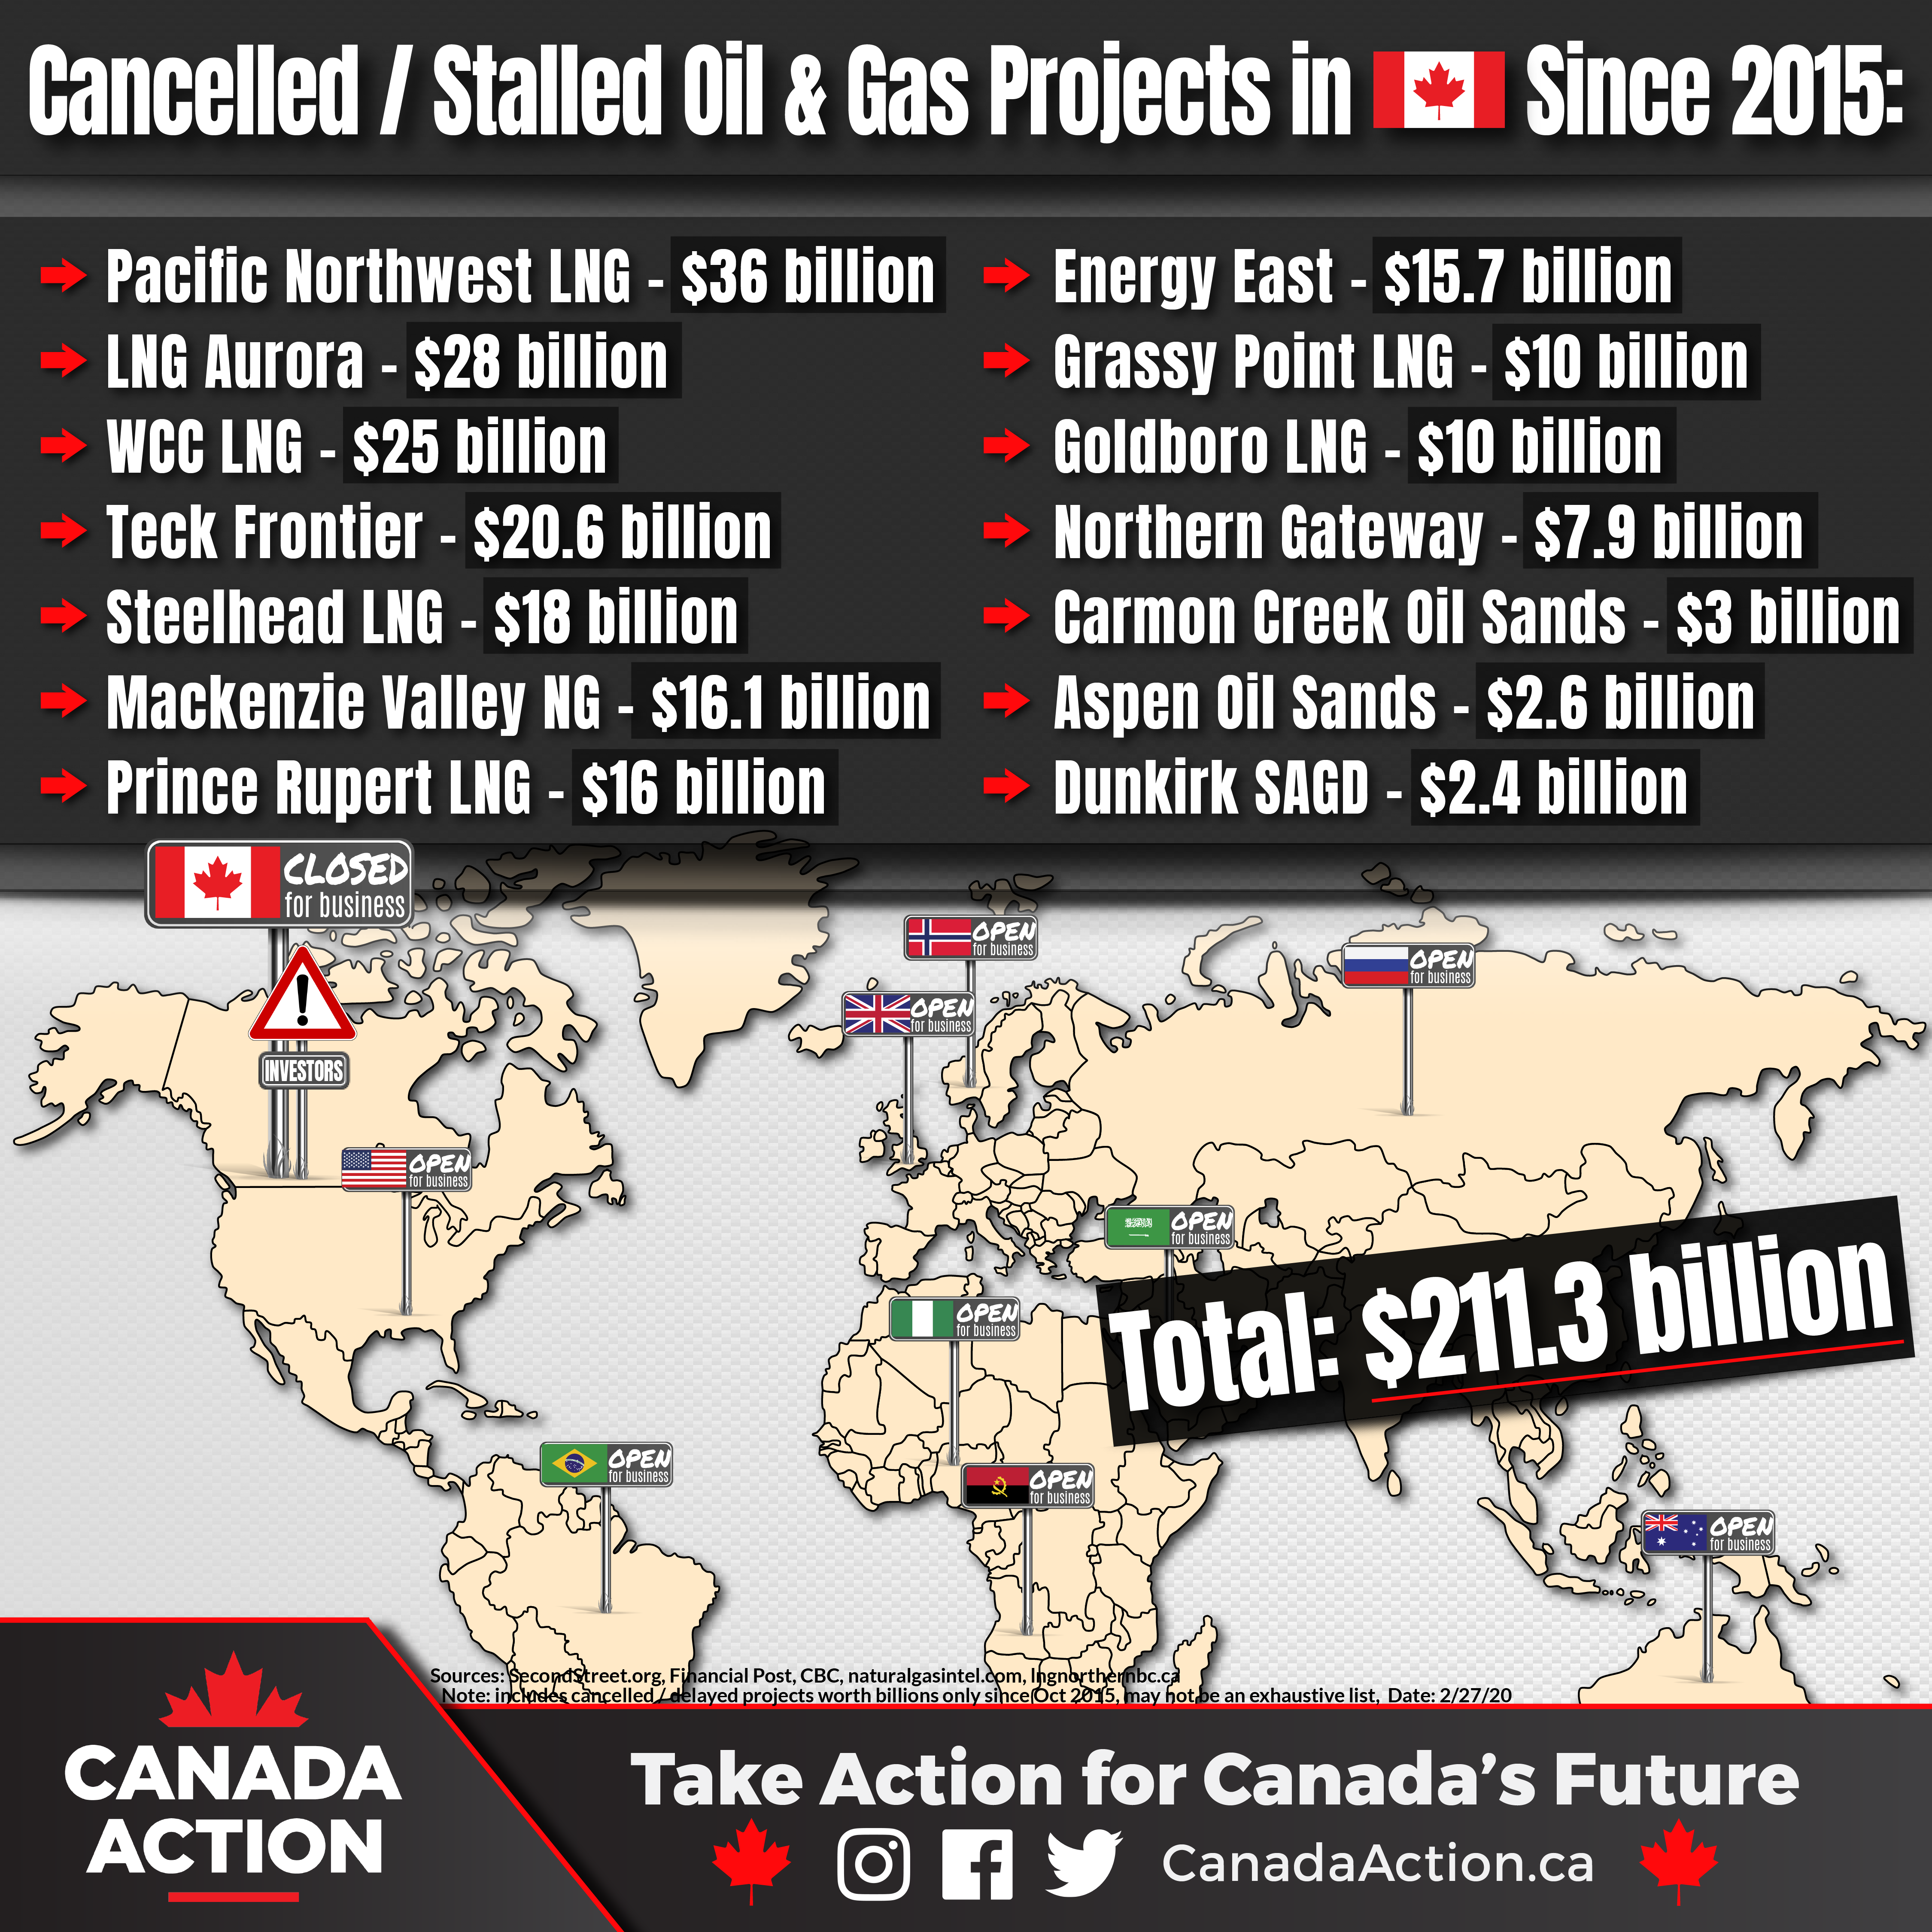 cancelled / delayed resource projects in canada since 2015